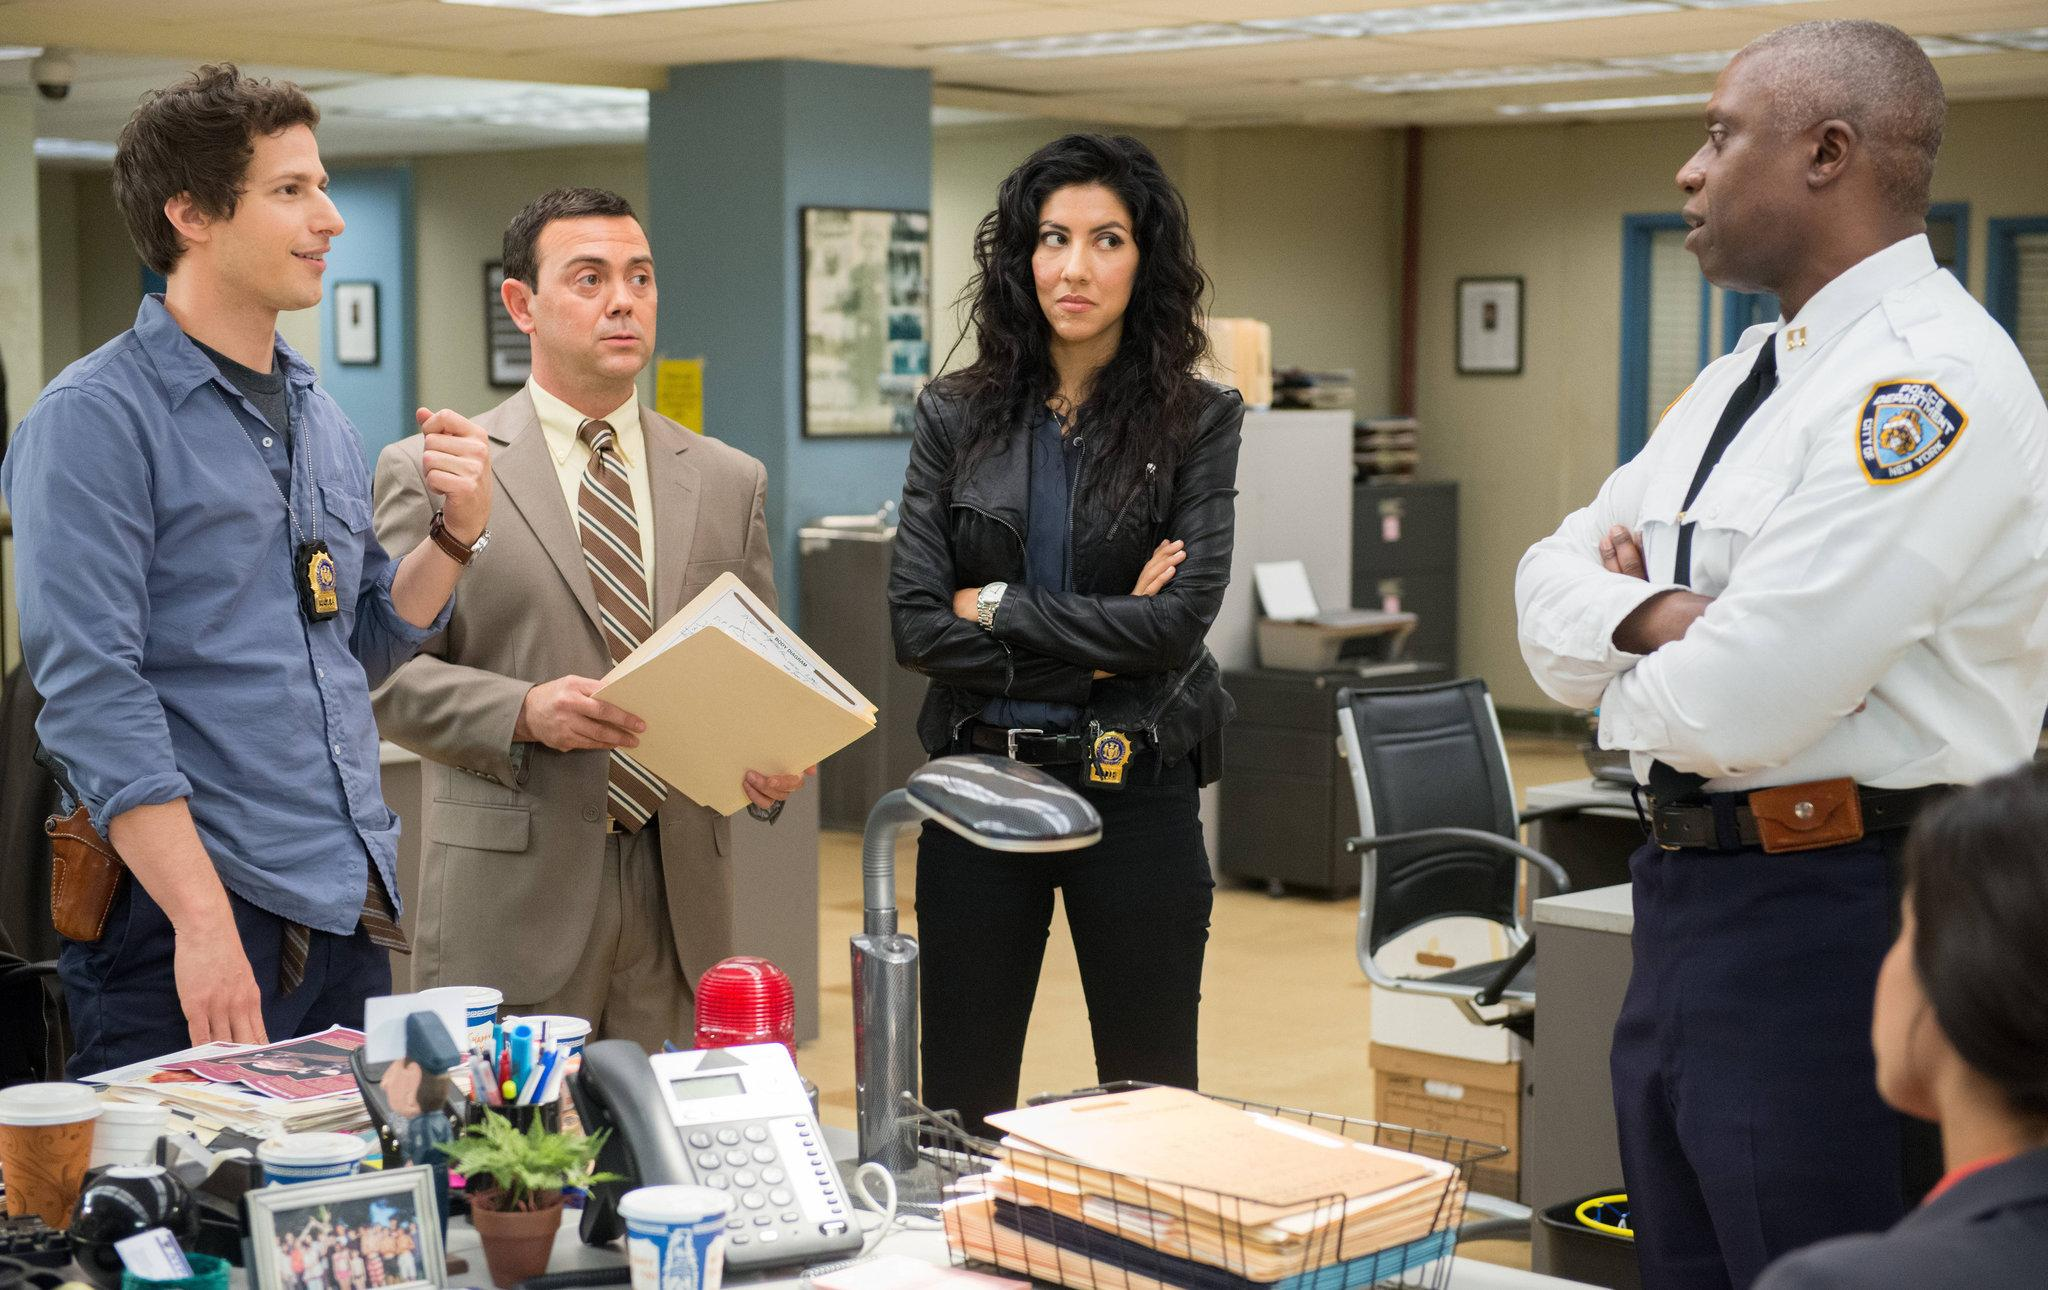 The usual workday scene in Precinct 99: Detective Jake Peralta (Andy Samberg) being his goofy persona with his co-workers, Detective Charles Boyle (Joe Lo Truglio) and Detective Rosa Diaz (Stephanie Beatriz).  Rosa Diaz (Stephanie Beatriz).  Detective Rosa Davis (Stephanie Beatriz) and Detective Charles Boyle (Joe Lo Truglio).